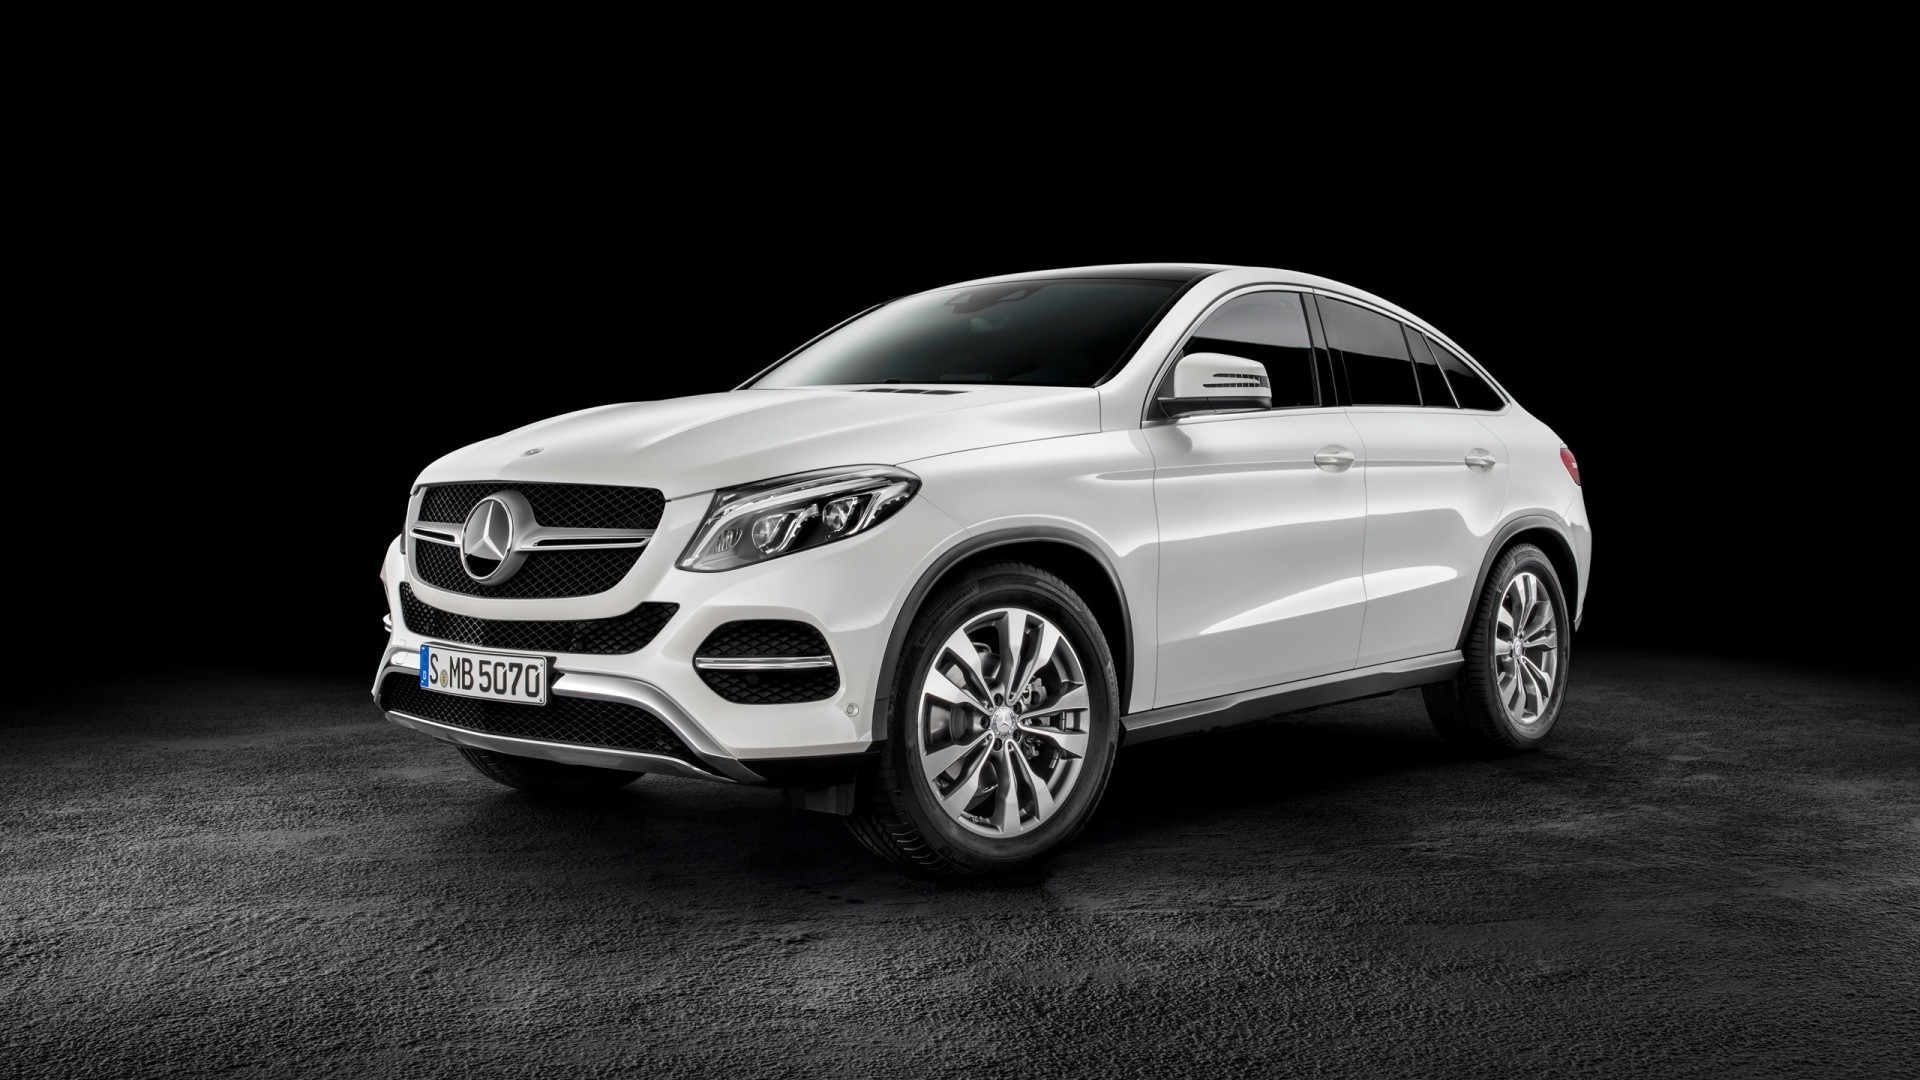 2015 mercedes benz gle coupe wallpaper hd car wallpapers id 5008. Black Bedroom Furniture Sets. Home Design Ideas